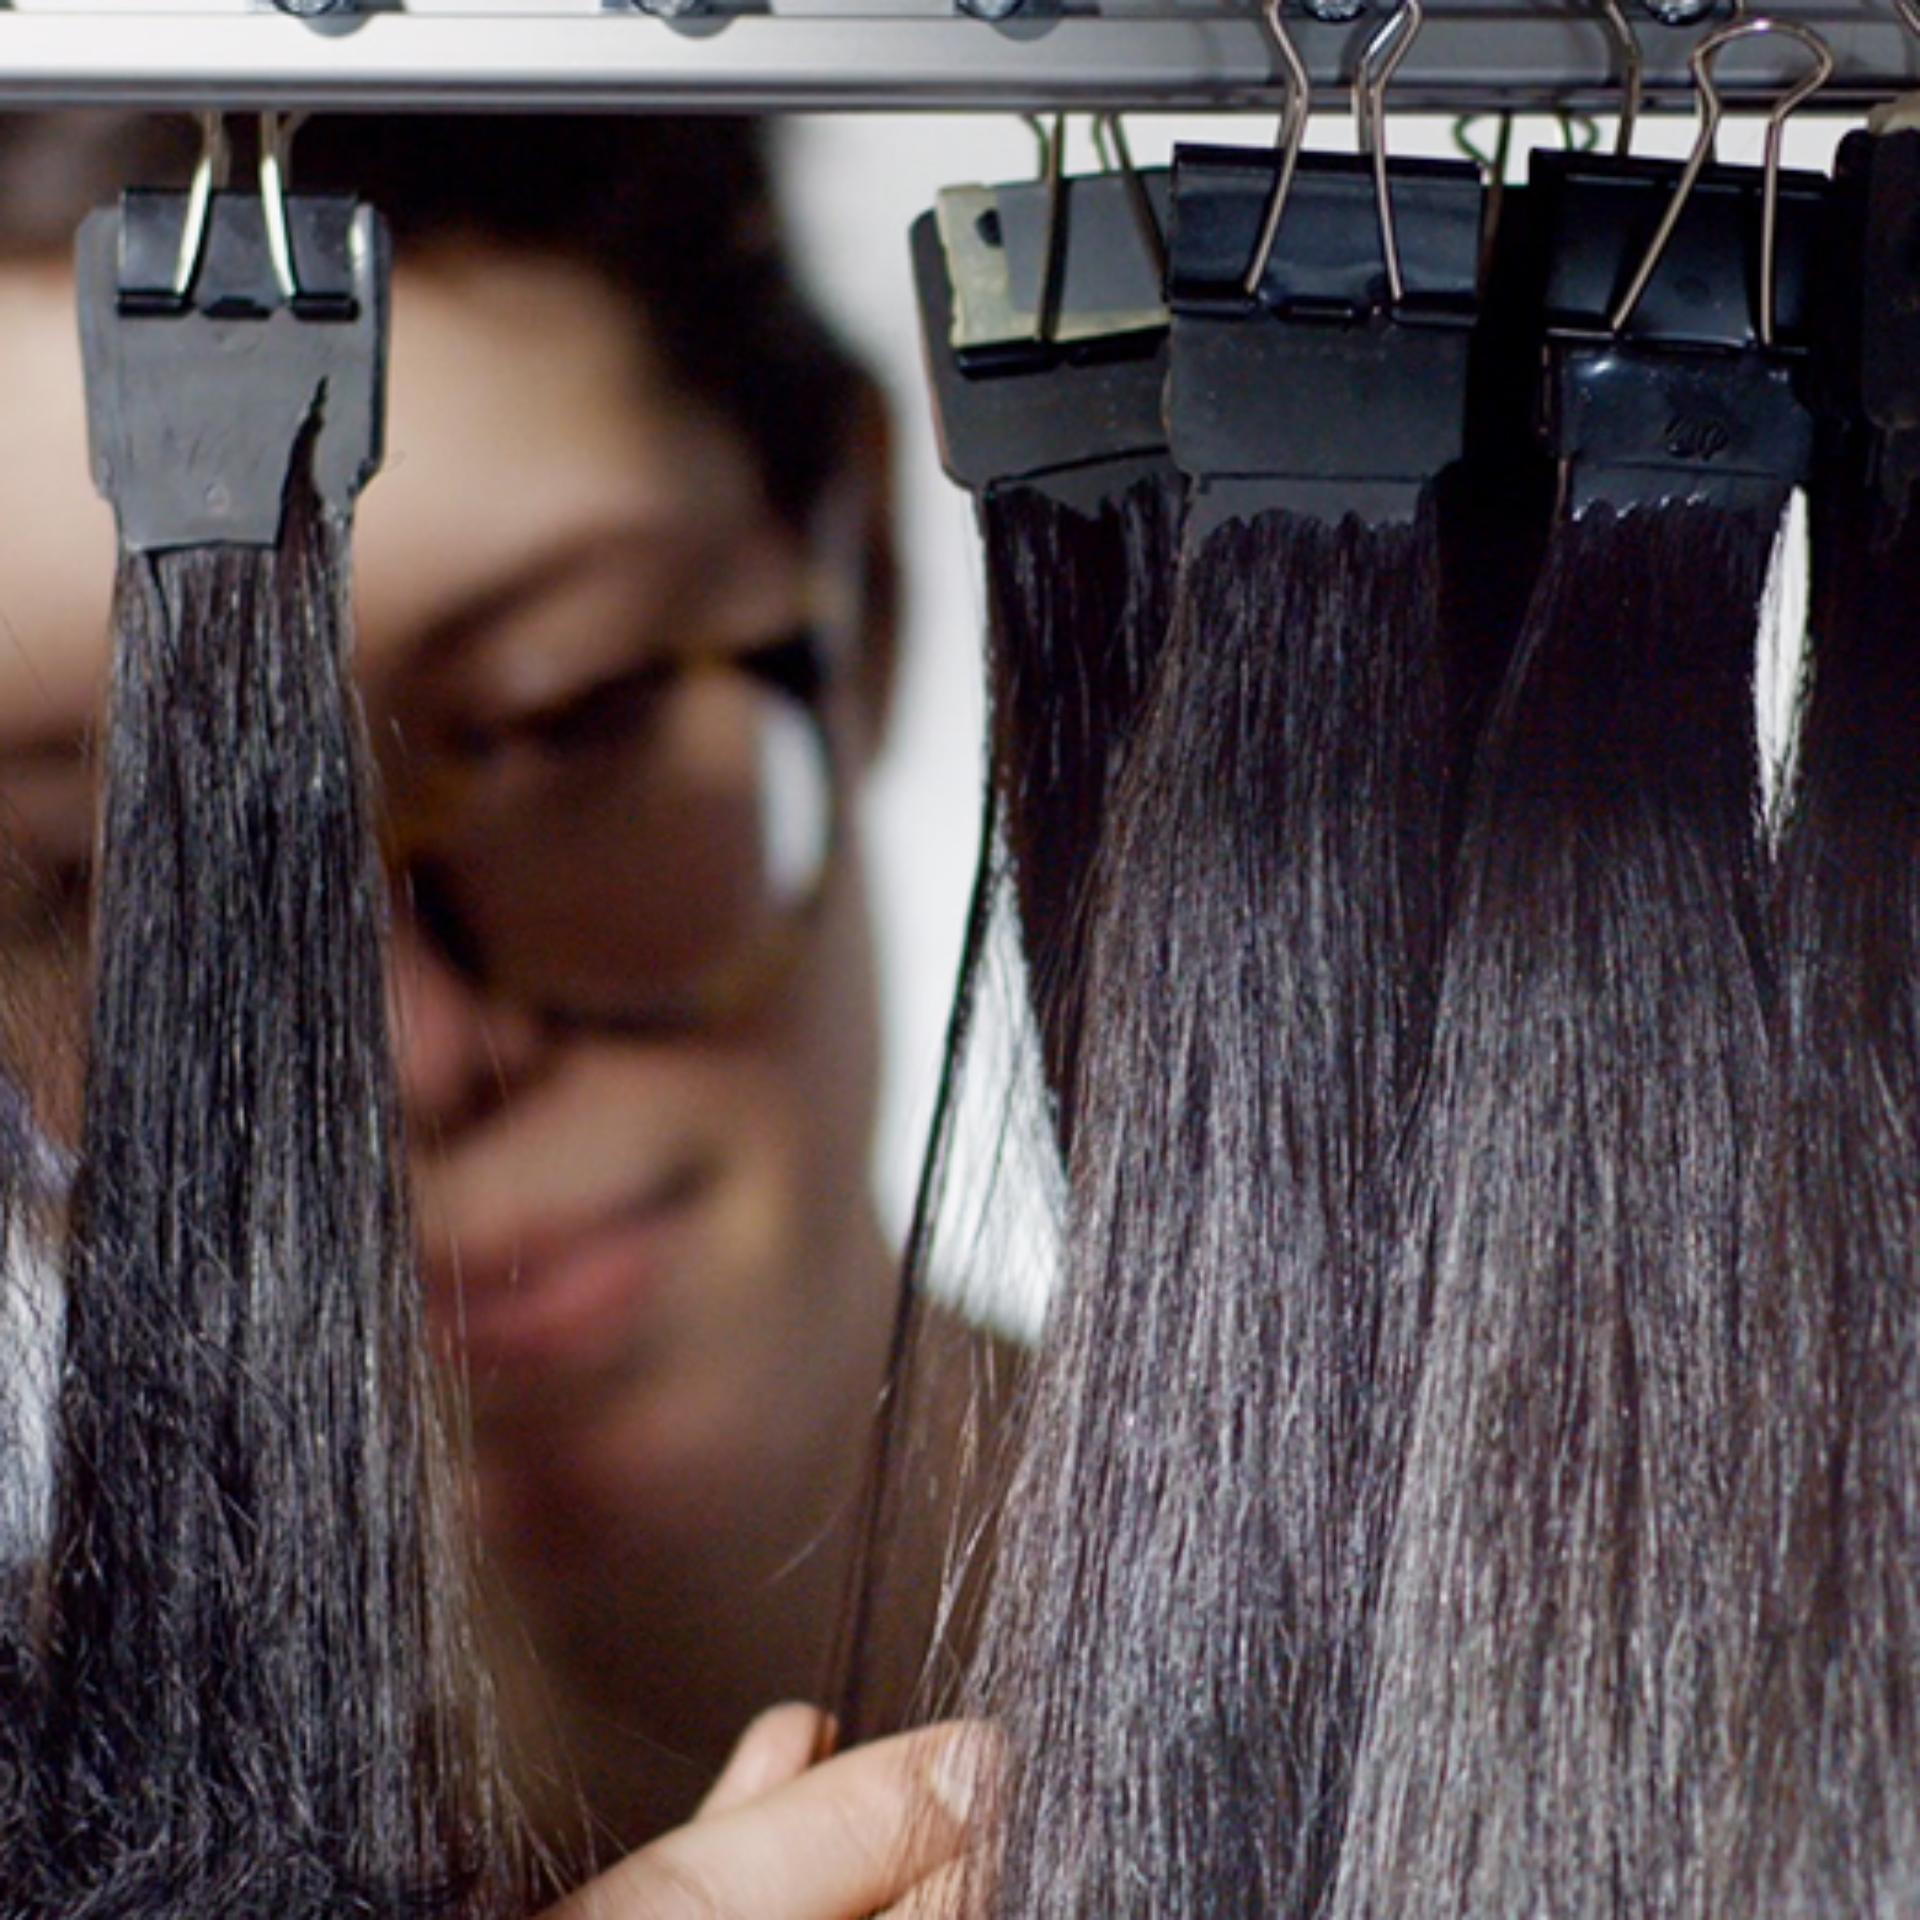 Real hair being tested in laboratory. The hair is clipped to a rail.